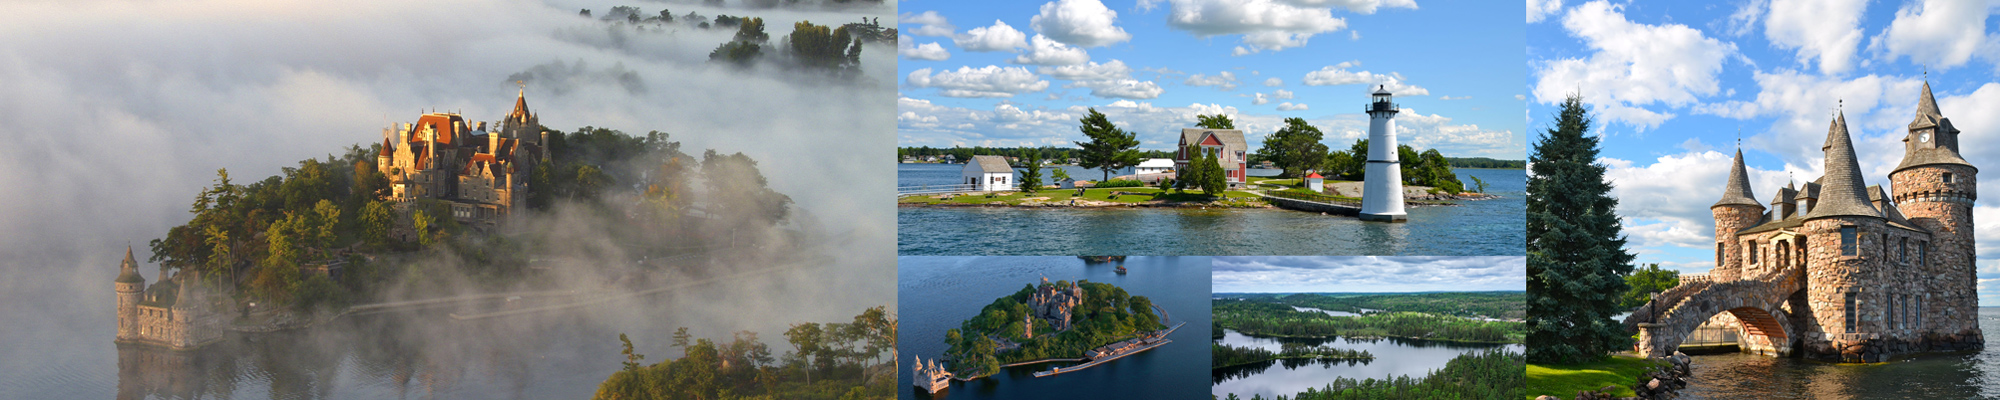 1000 Isole Thousand Islands Ontario Canada